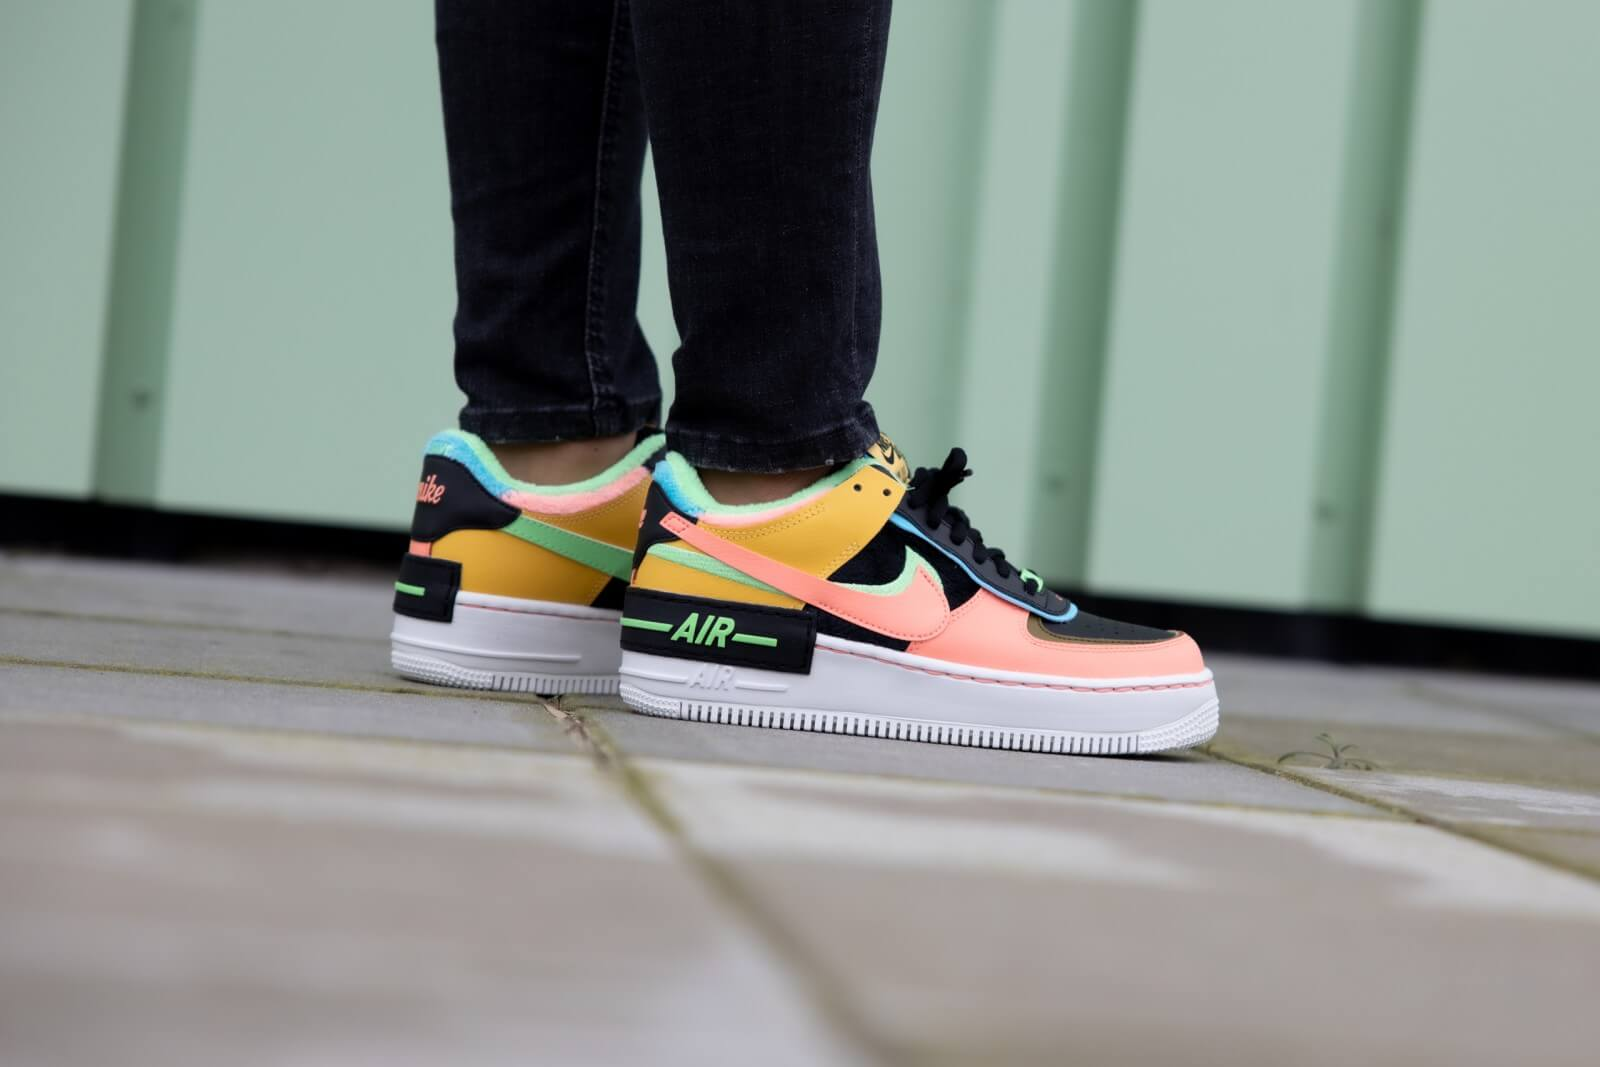 Nike Women S Air Force 1 Shadow Se Solar Flare Atomic Pink Baltic Blue Ct1985 700 Slightly lifted midsole for a touch of height. nike women s air force 1 shadow se solar flare atomic pink baltic blue